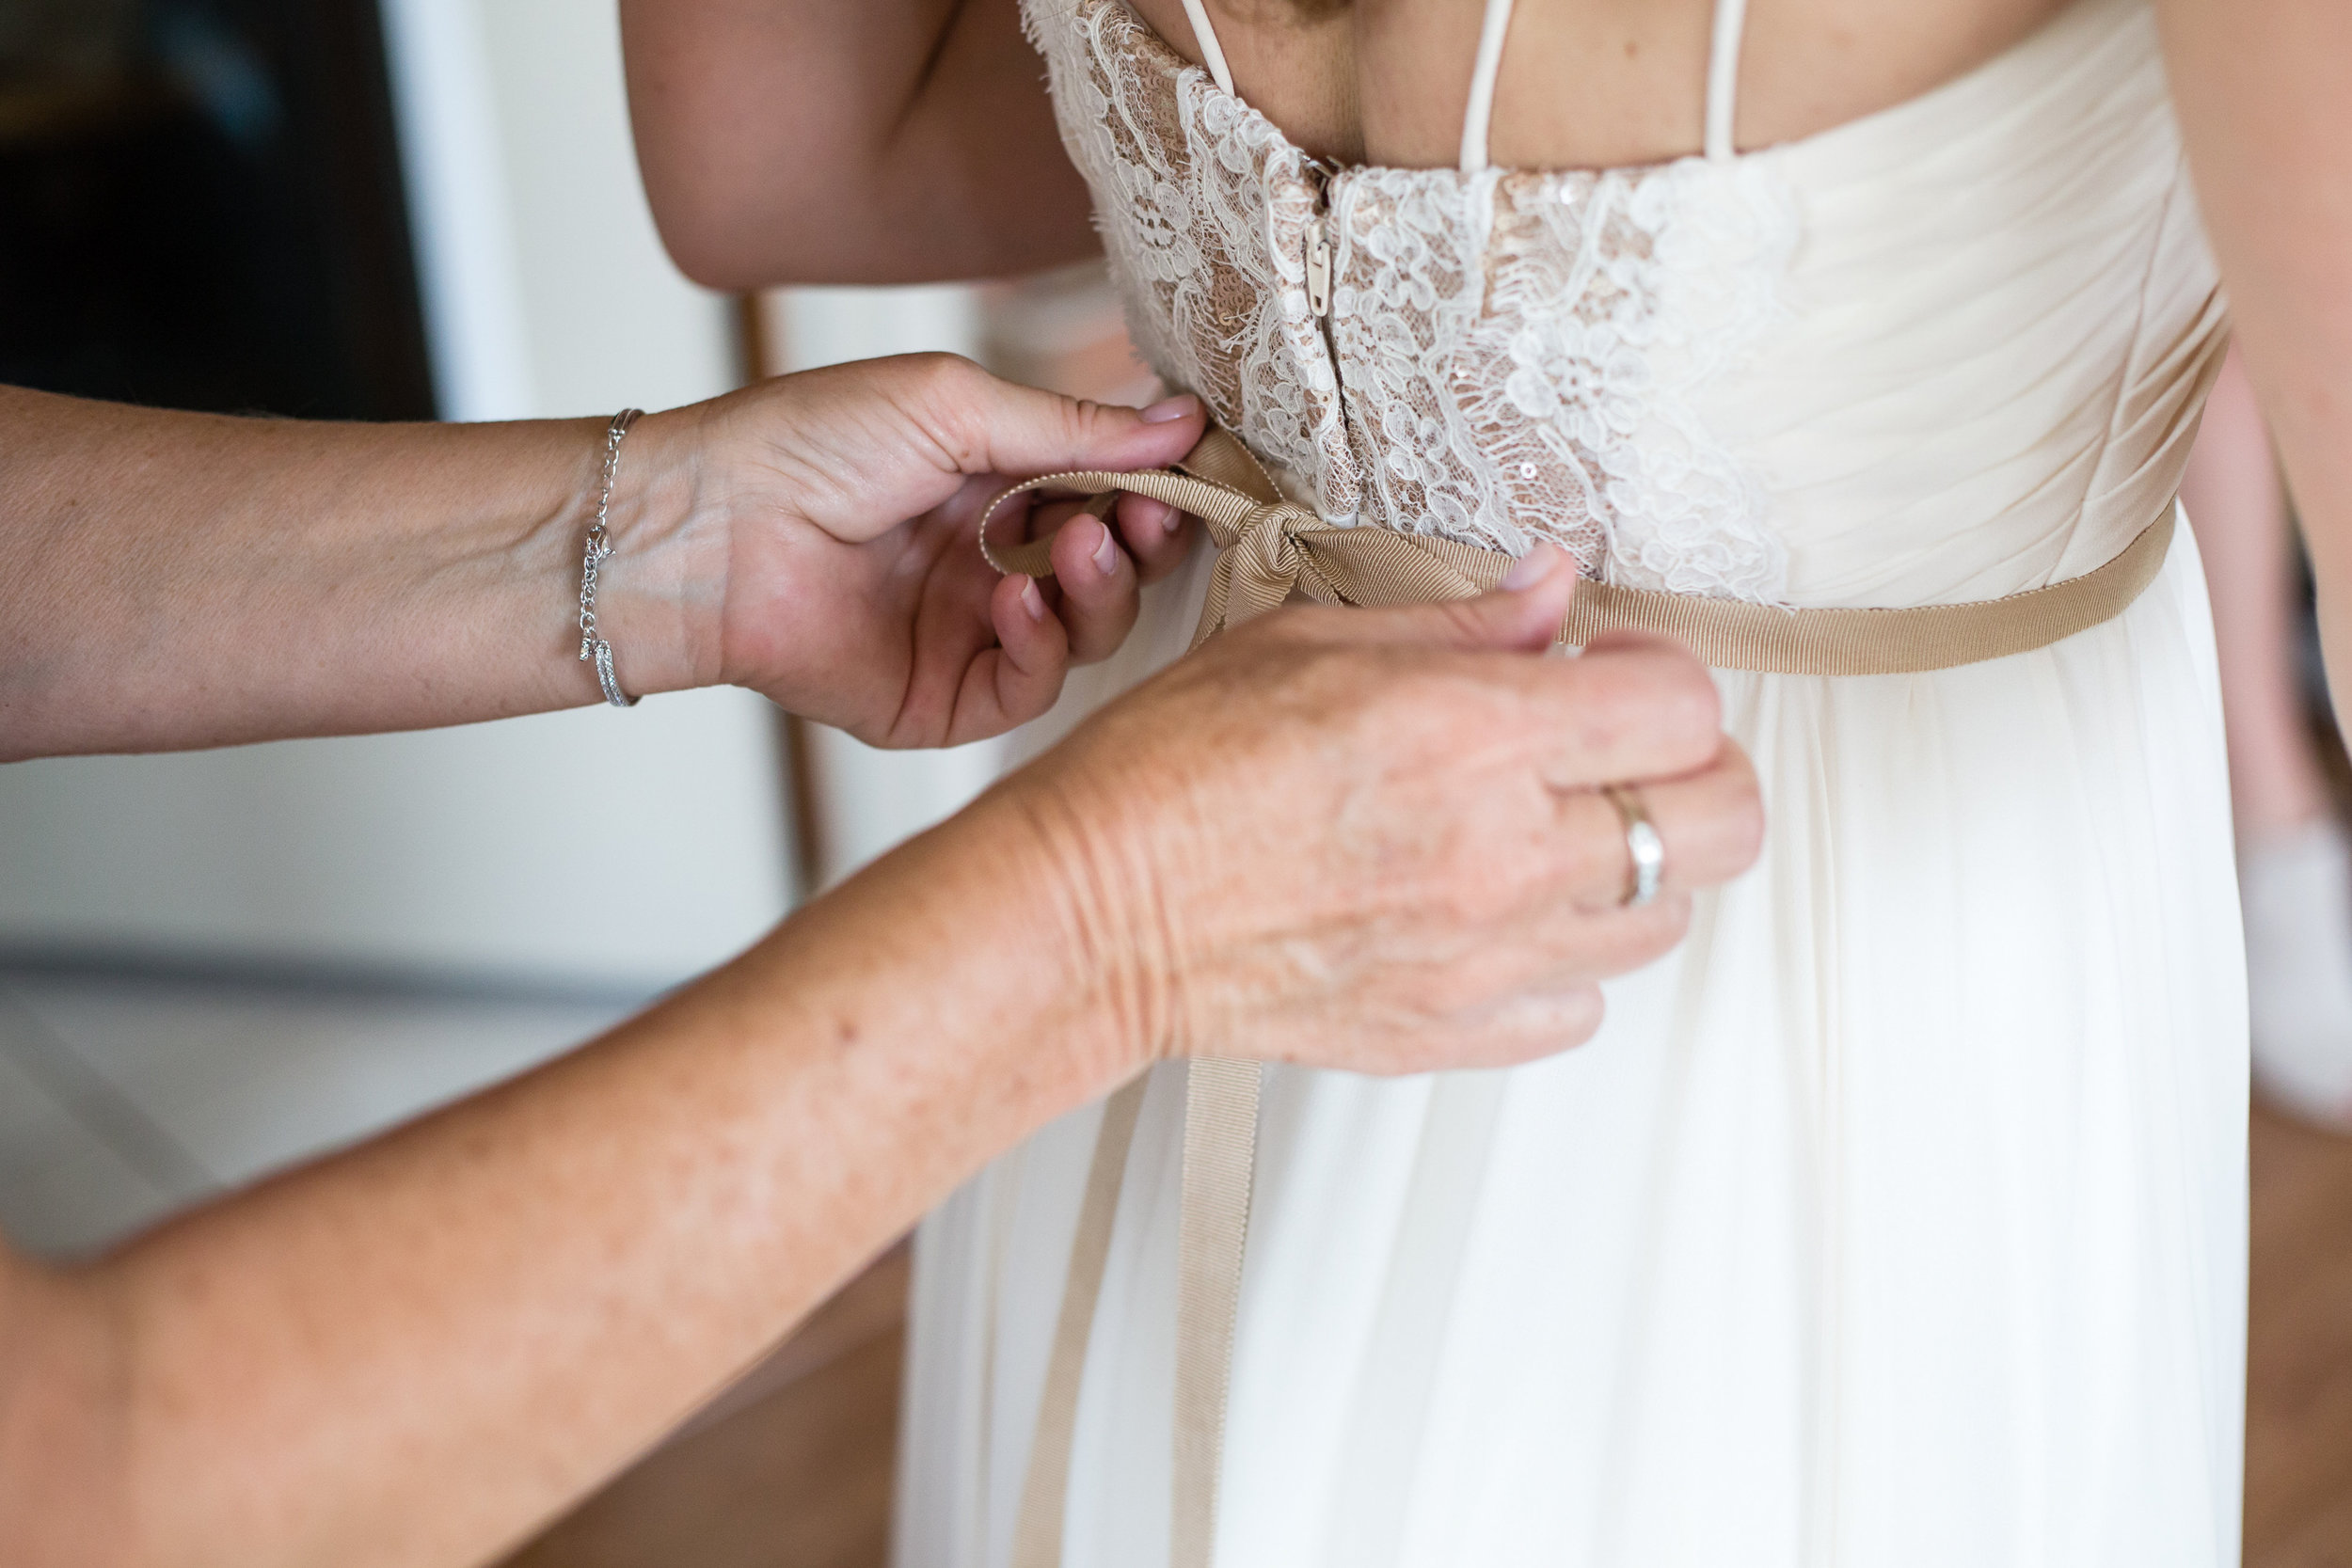 moncton_wedding_photographer_caro_photo-81.jpg